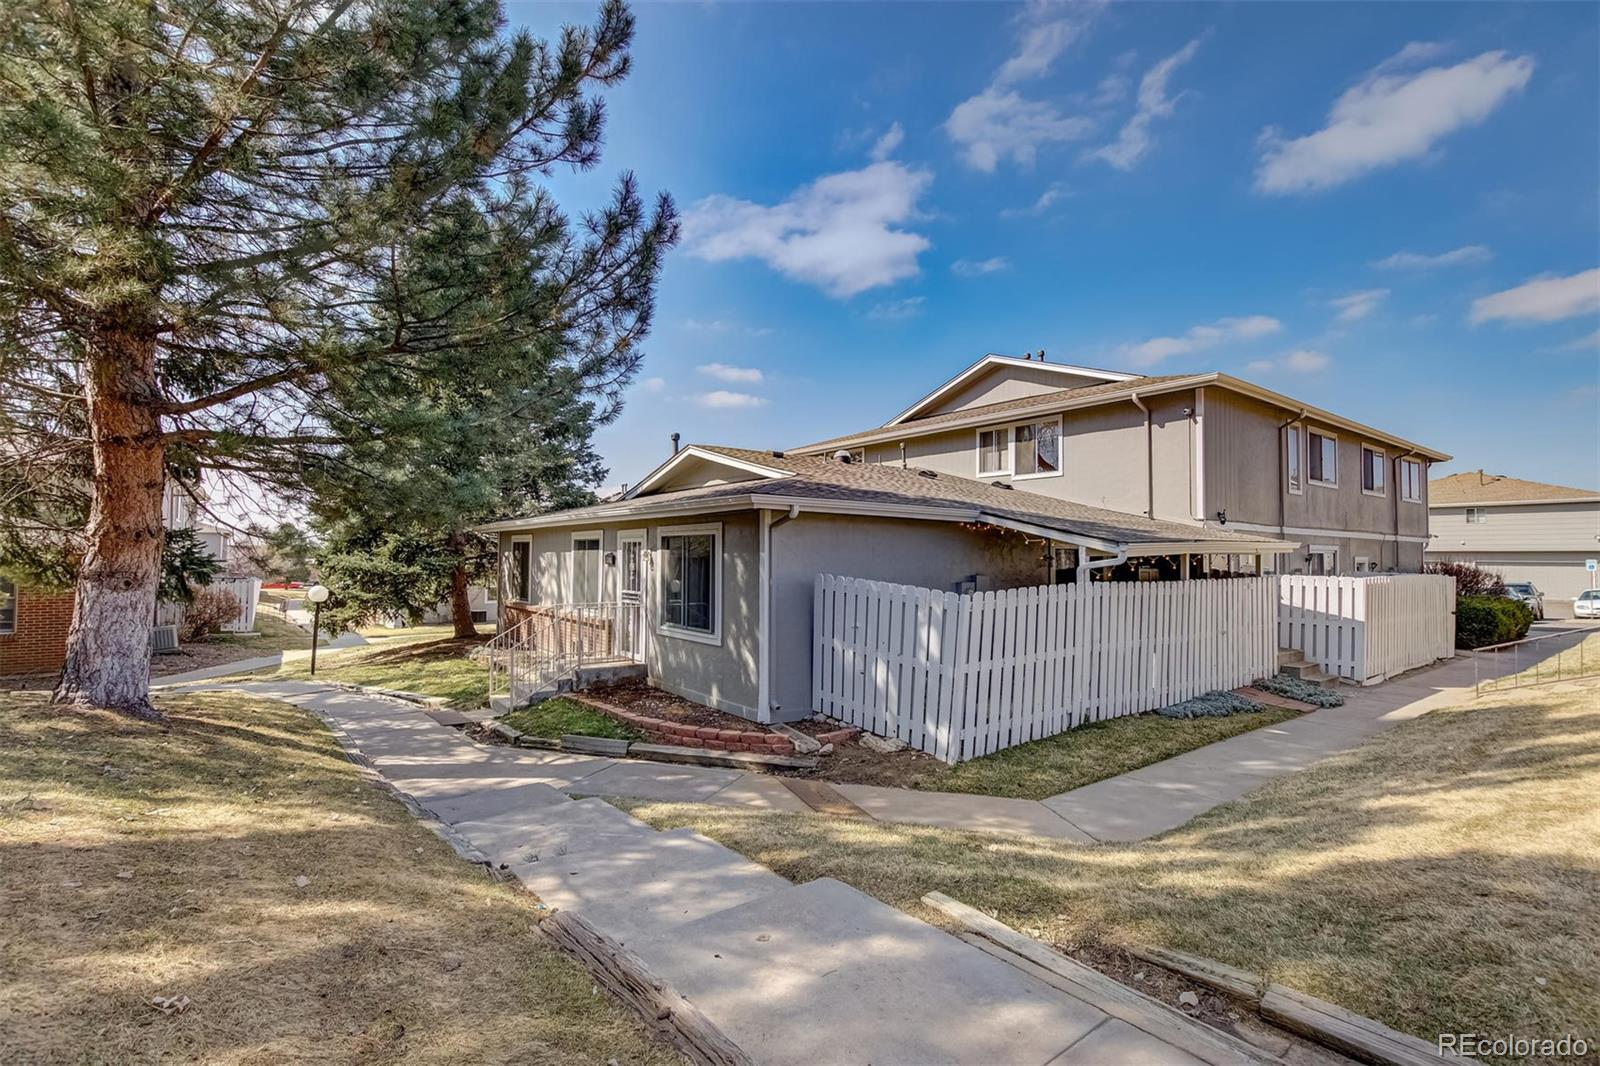 MLS# 7587510 - 33 - 14576 E 13th Avenue, Aurora, CO 80011